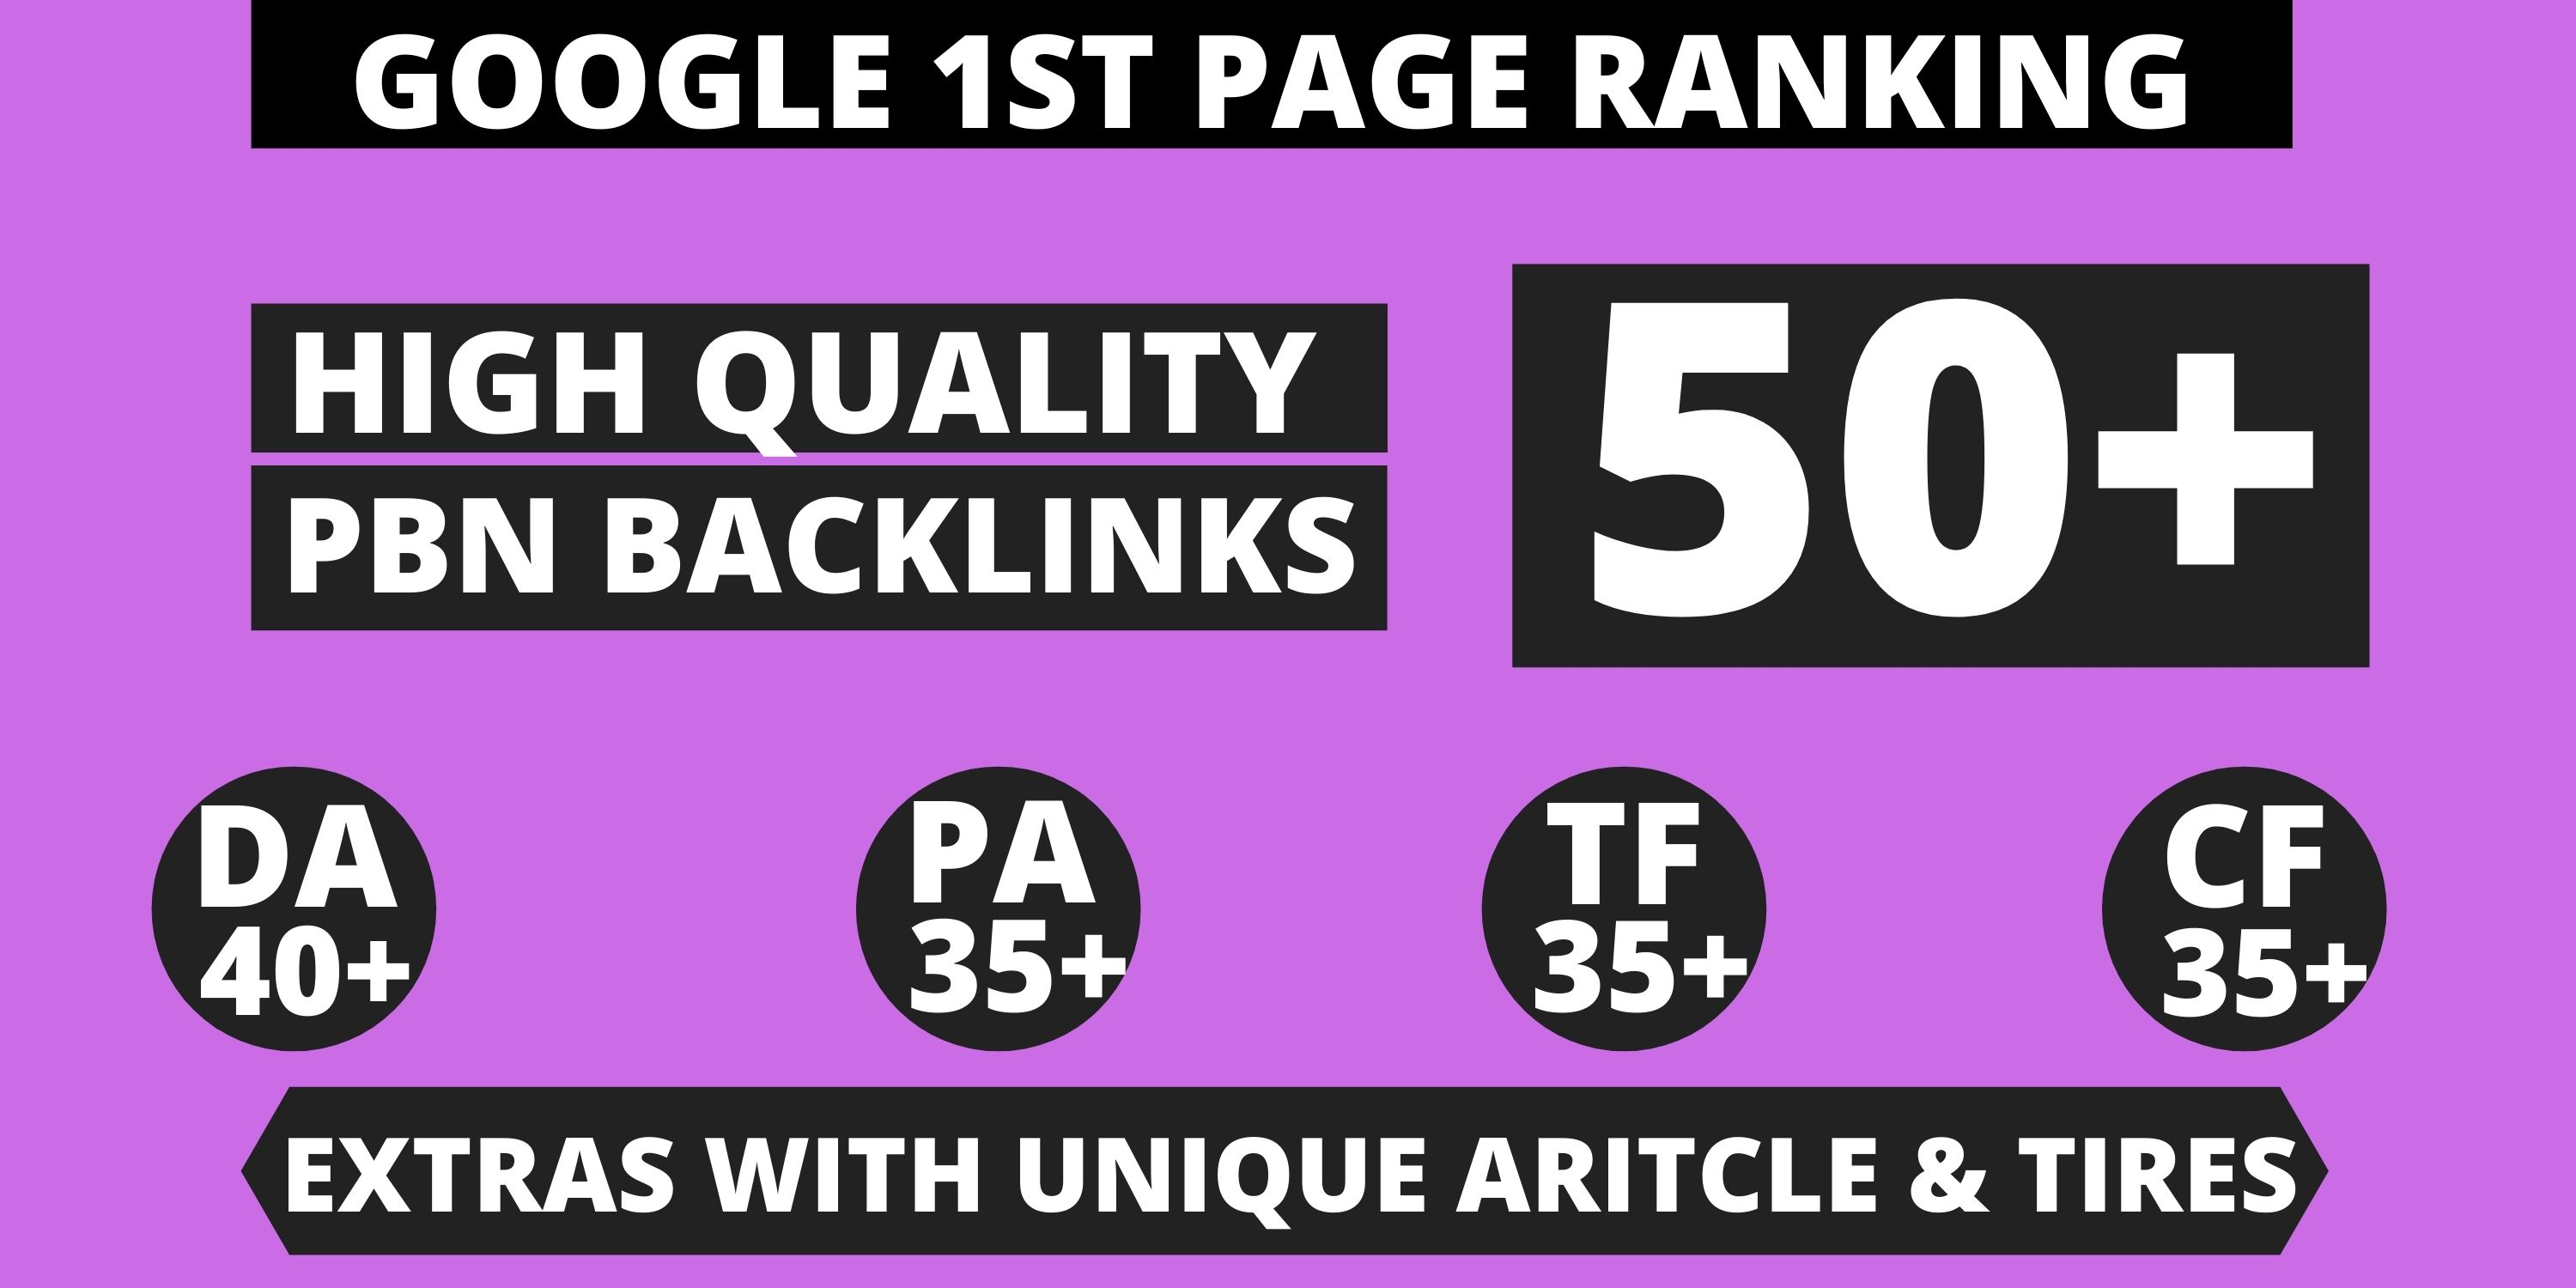 Get Extreme 50+ PBN Backlink in your website homepage with HIGH DA/PA/TF/CF with unique website